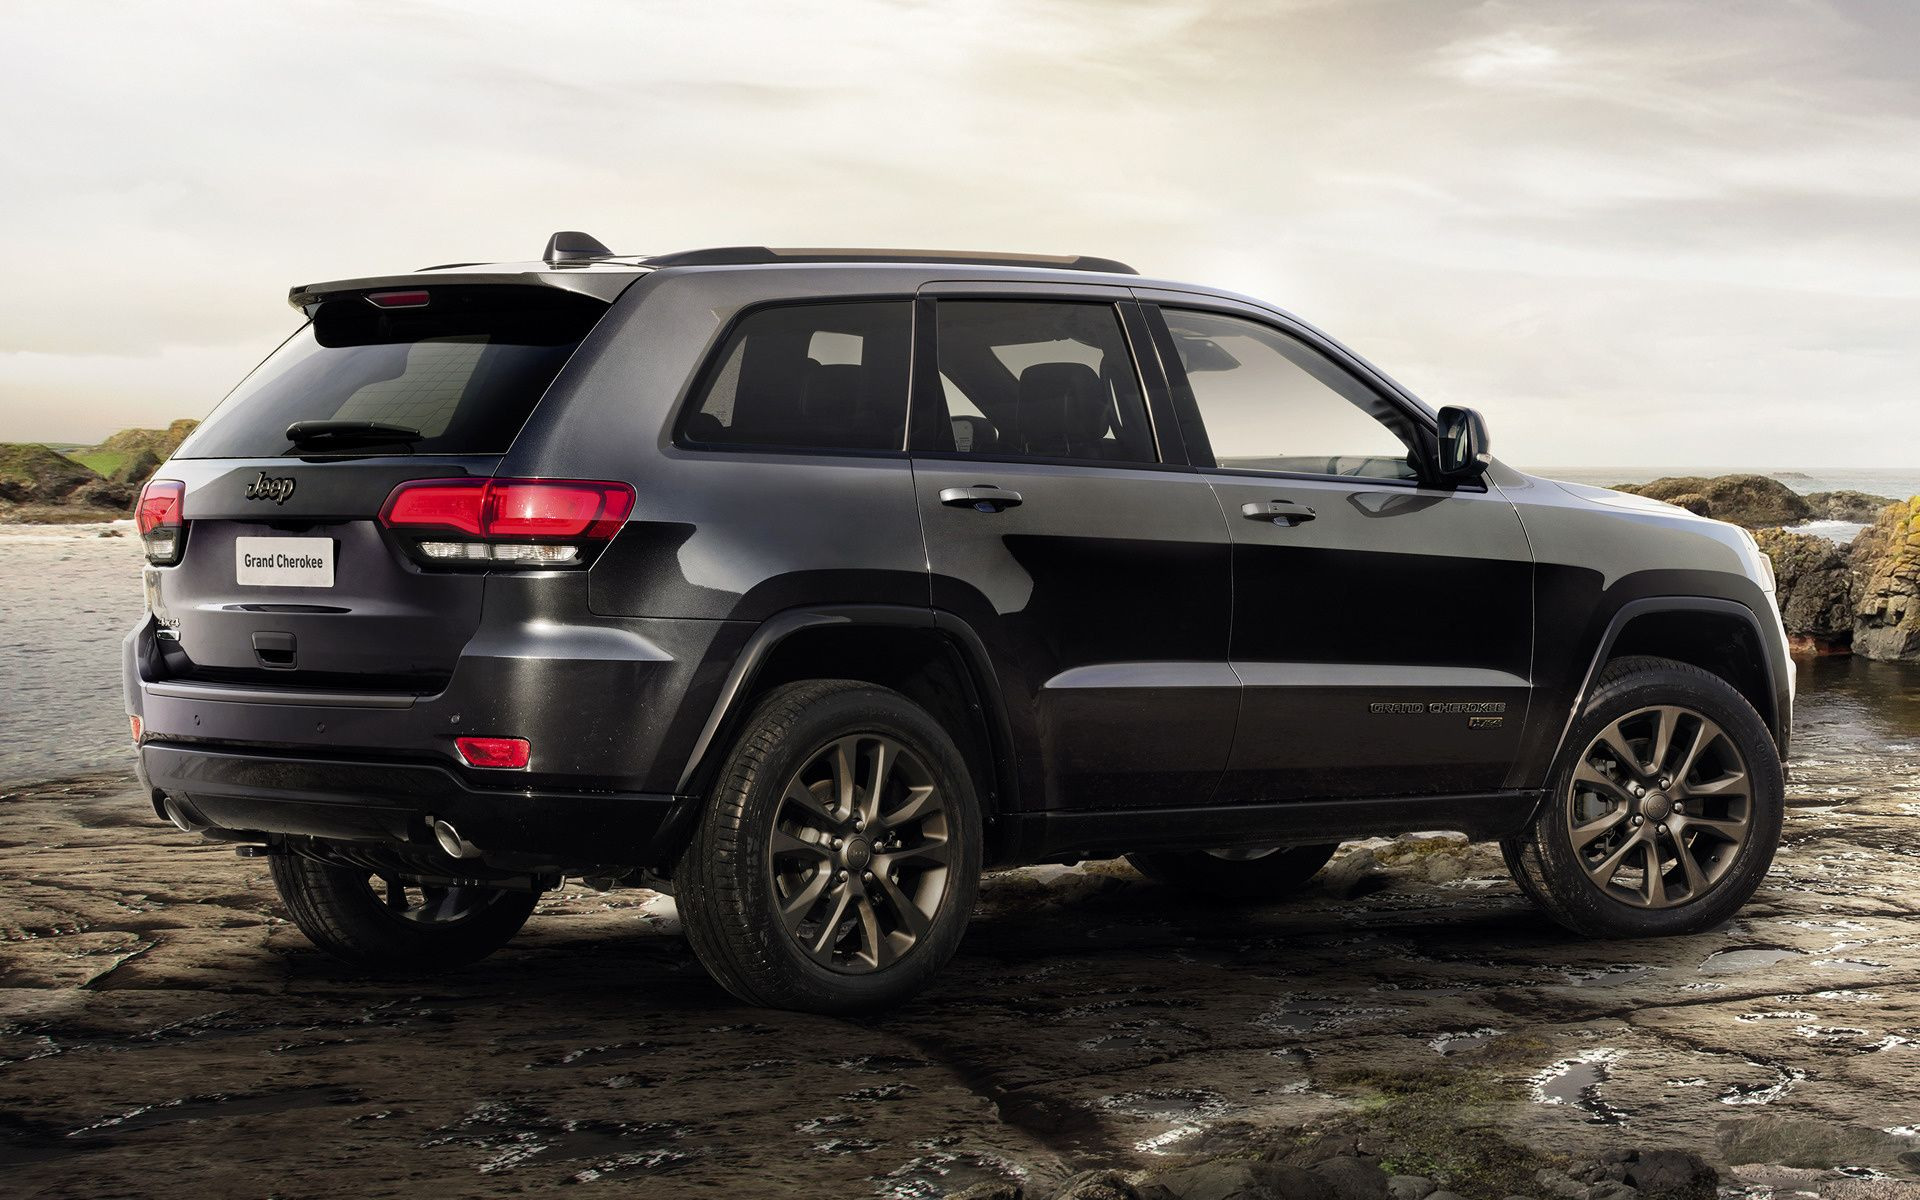 Jeep Grand Cherokee HD Wallpapers   Wallpaper Cave